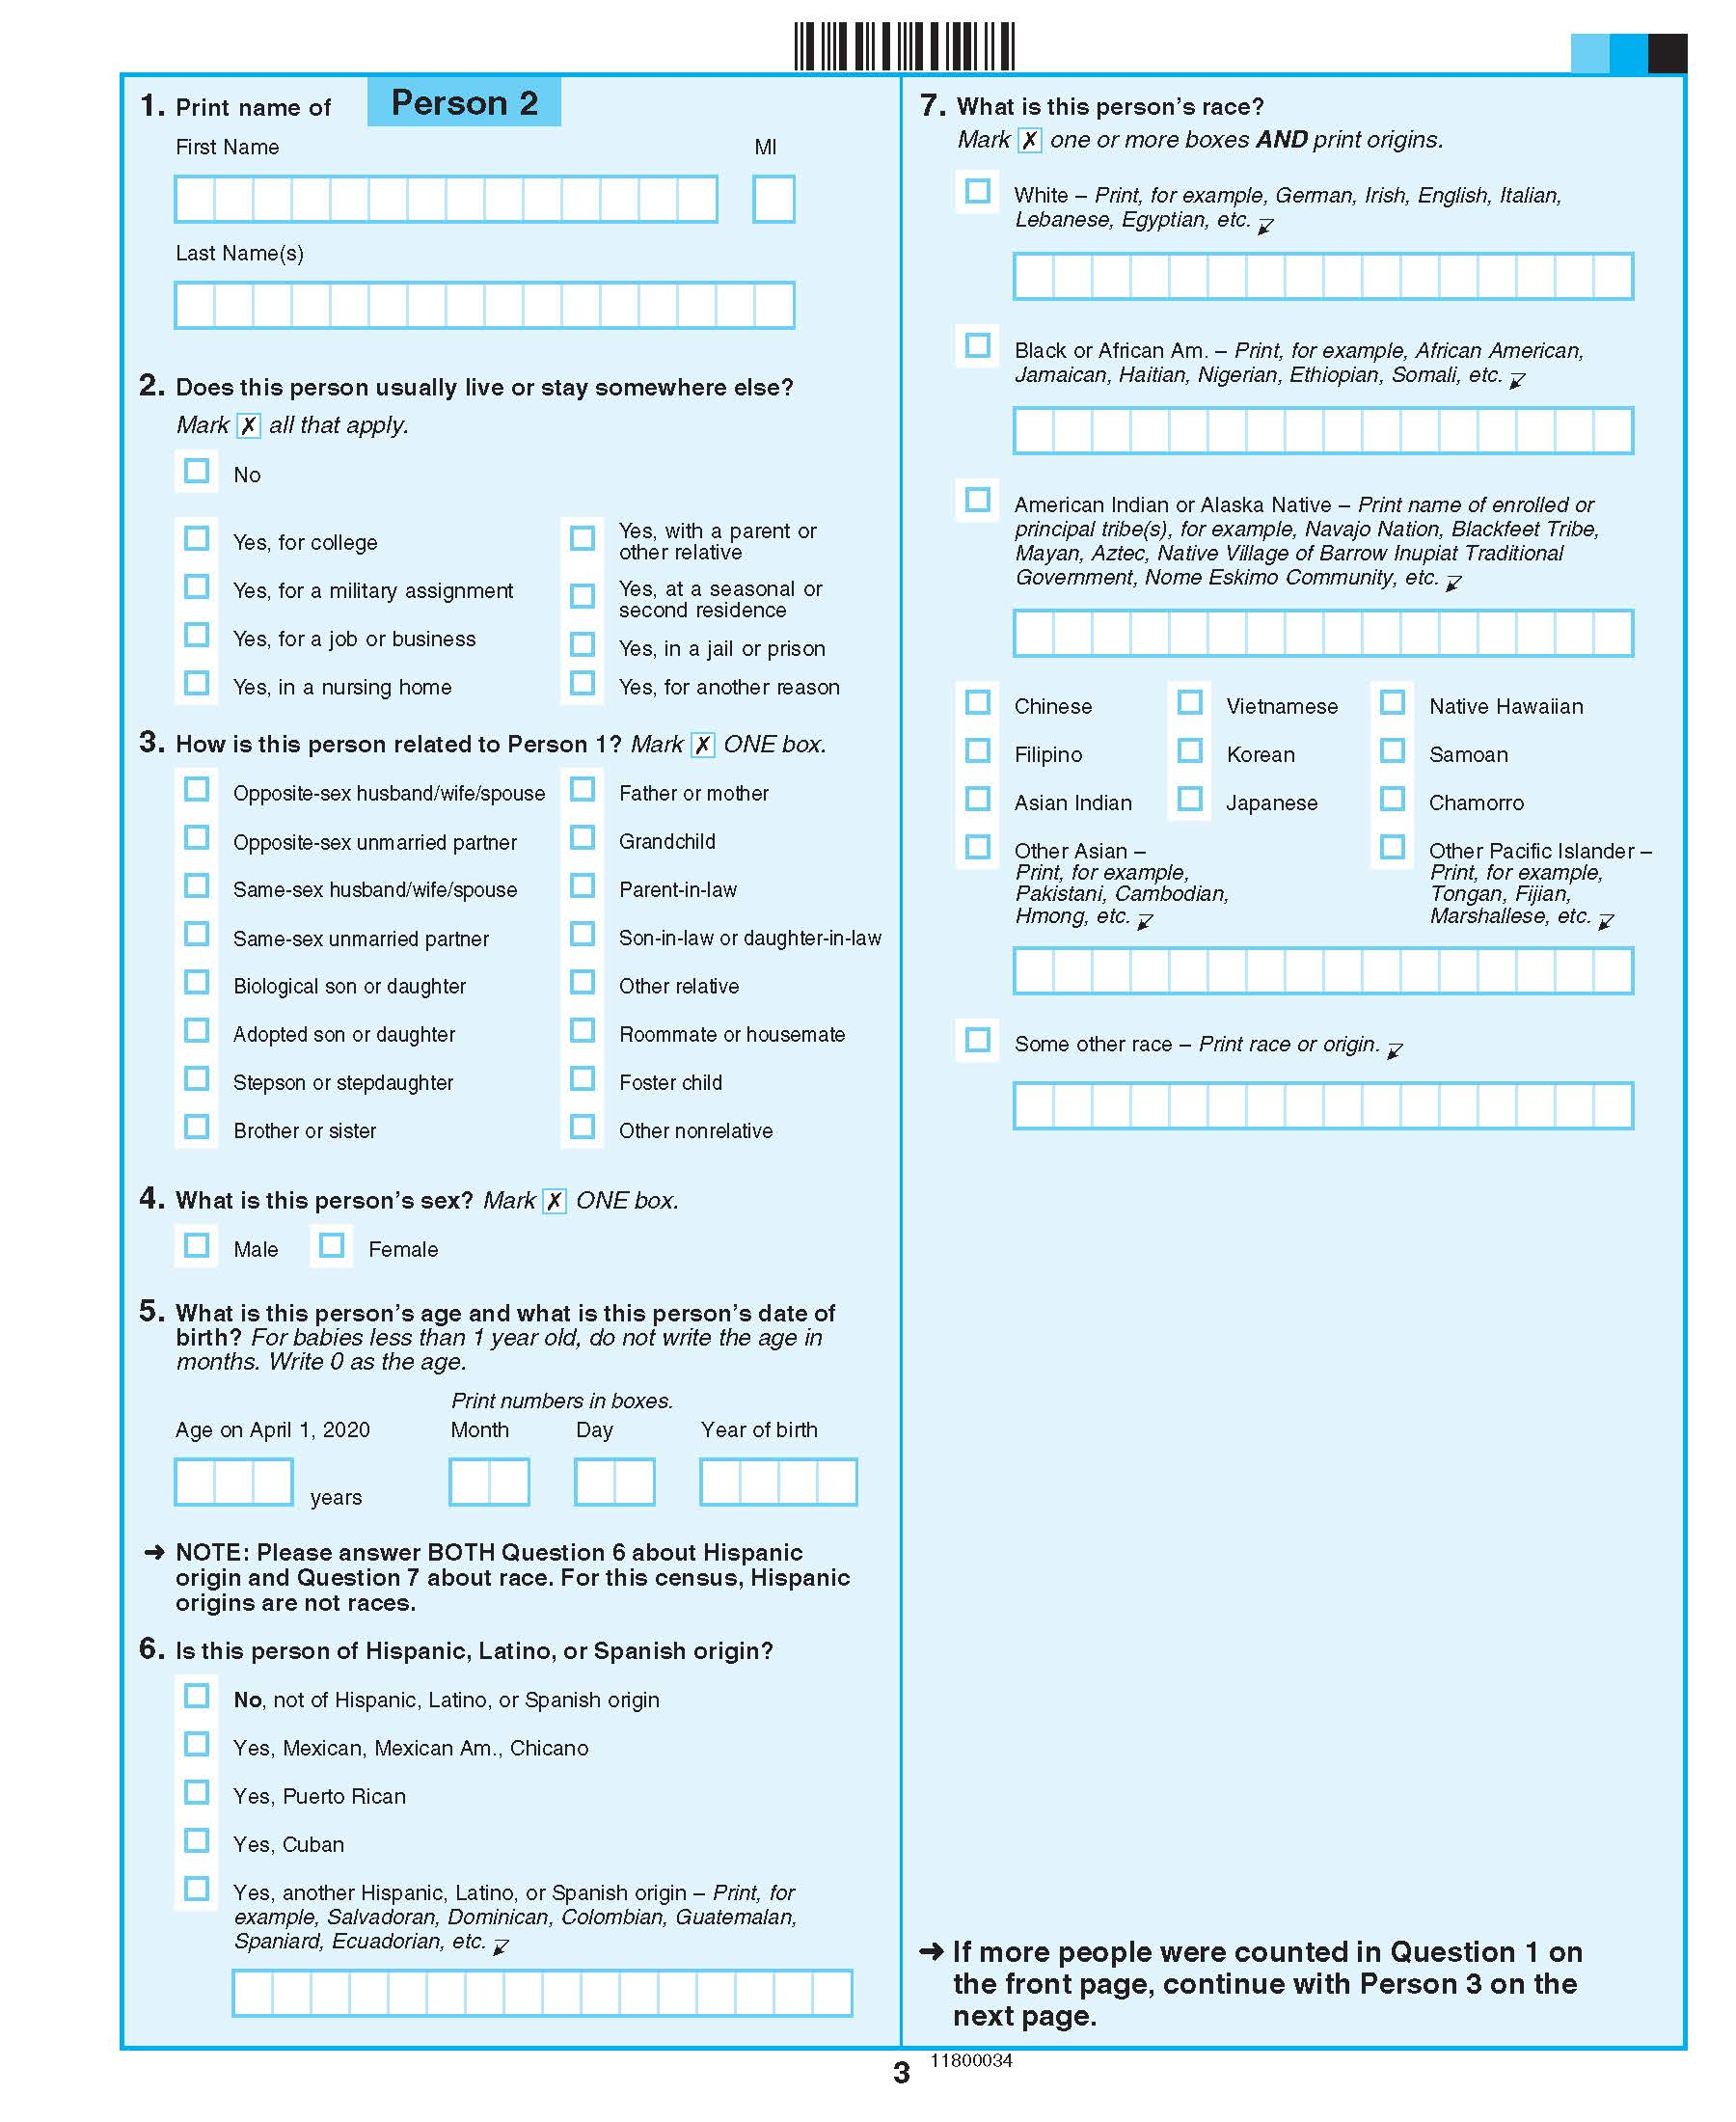 2020 Census Questionnaire_Page_3